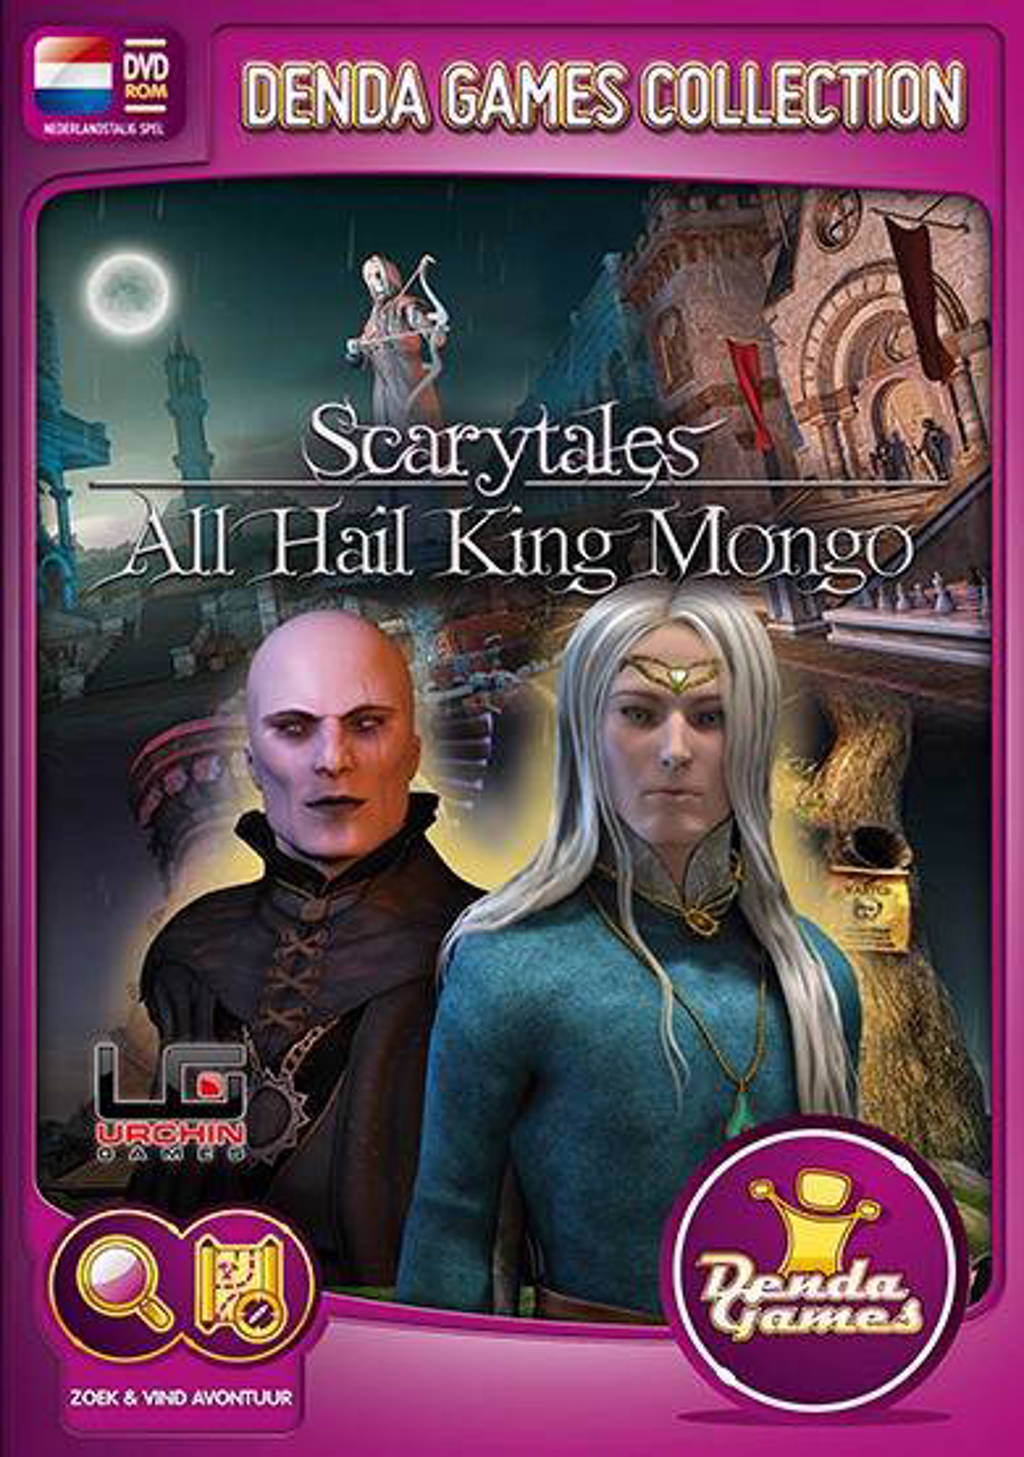 Scarytales - All hail king mongo (PC)